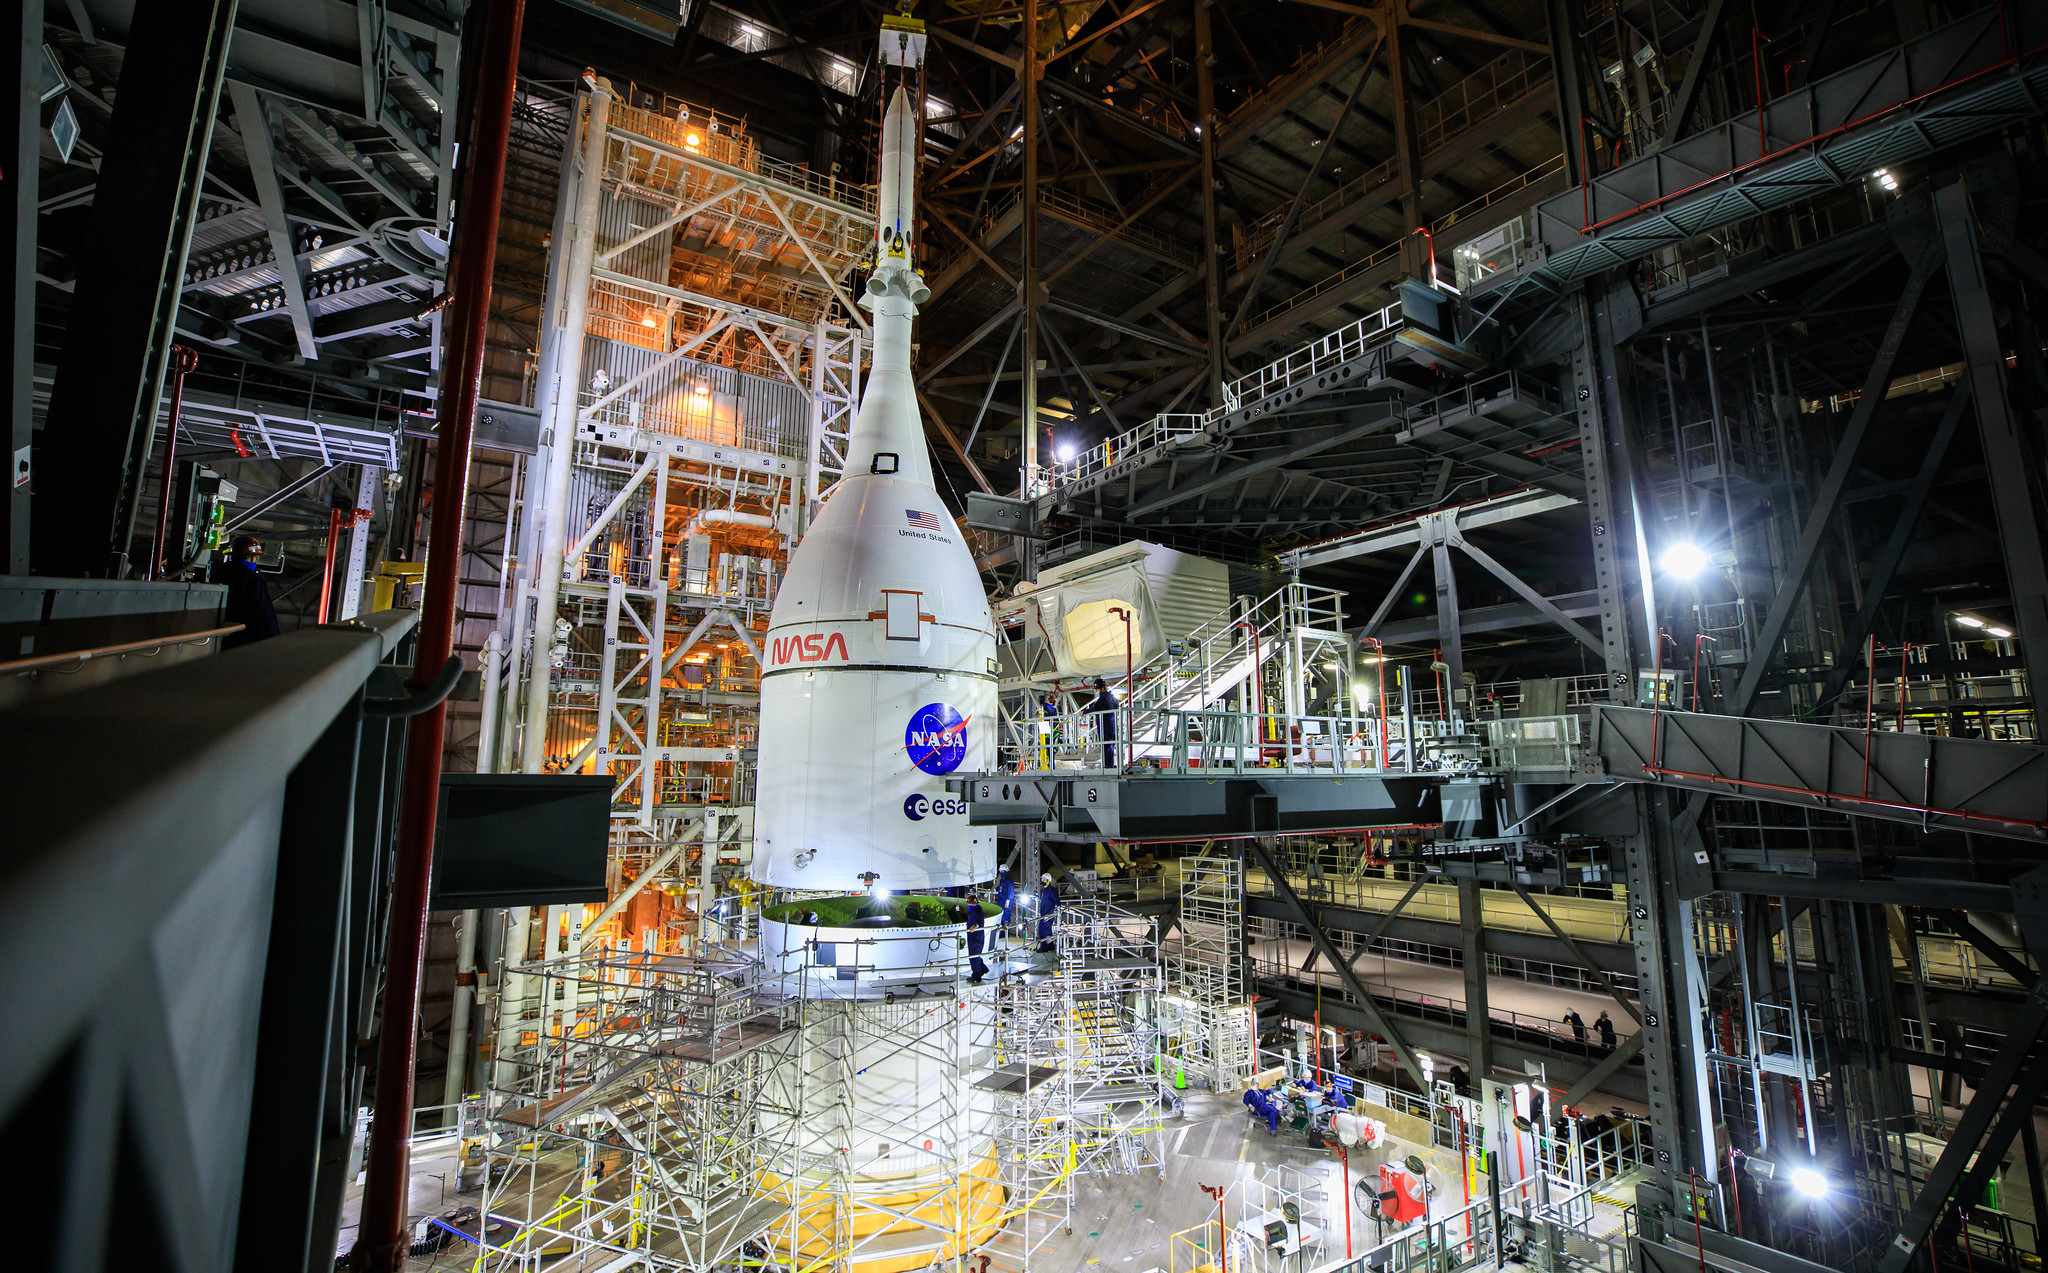 NASA Set to Launch Uncrewed Artemis 1 Mission to the Moon in February 2022